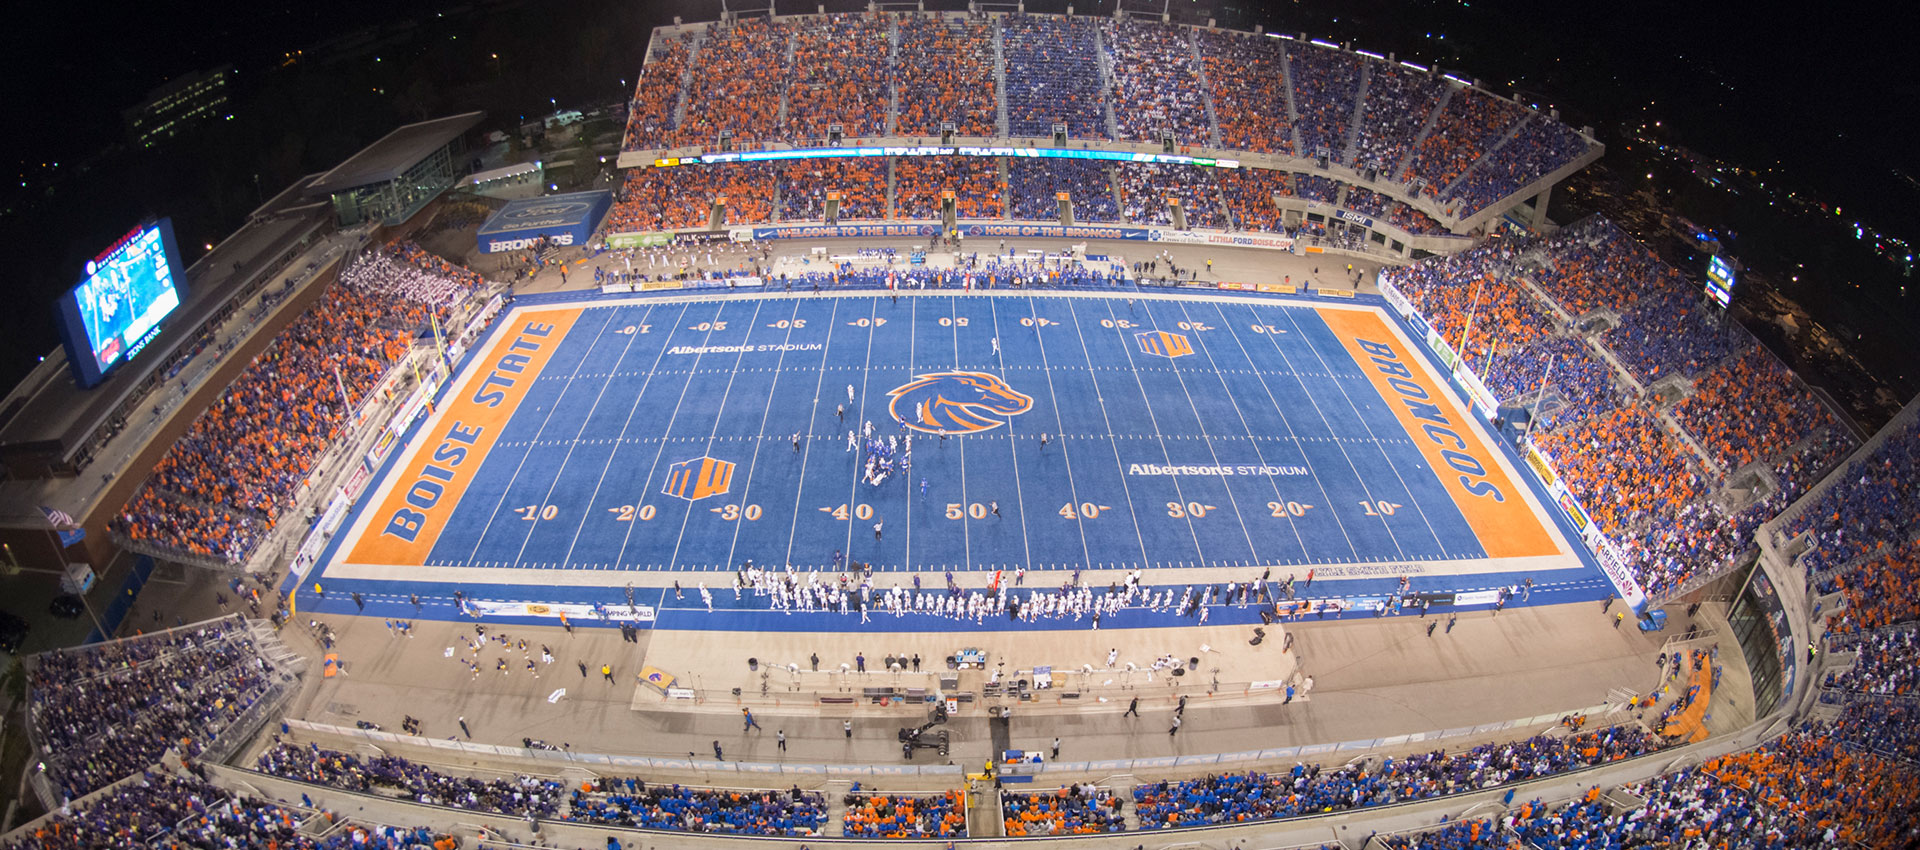 Boise State blue field 9 homepage